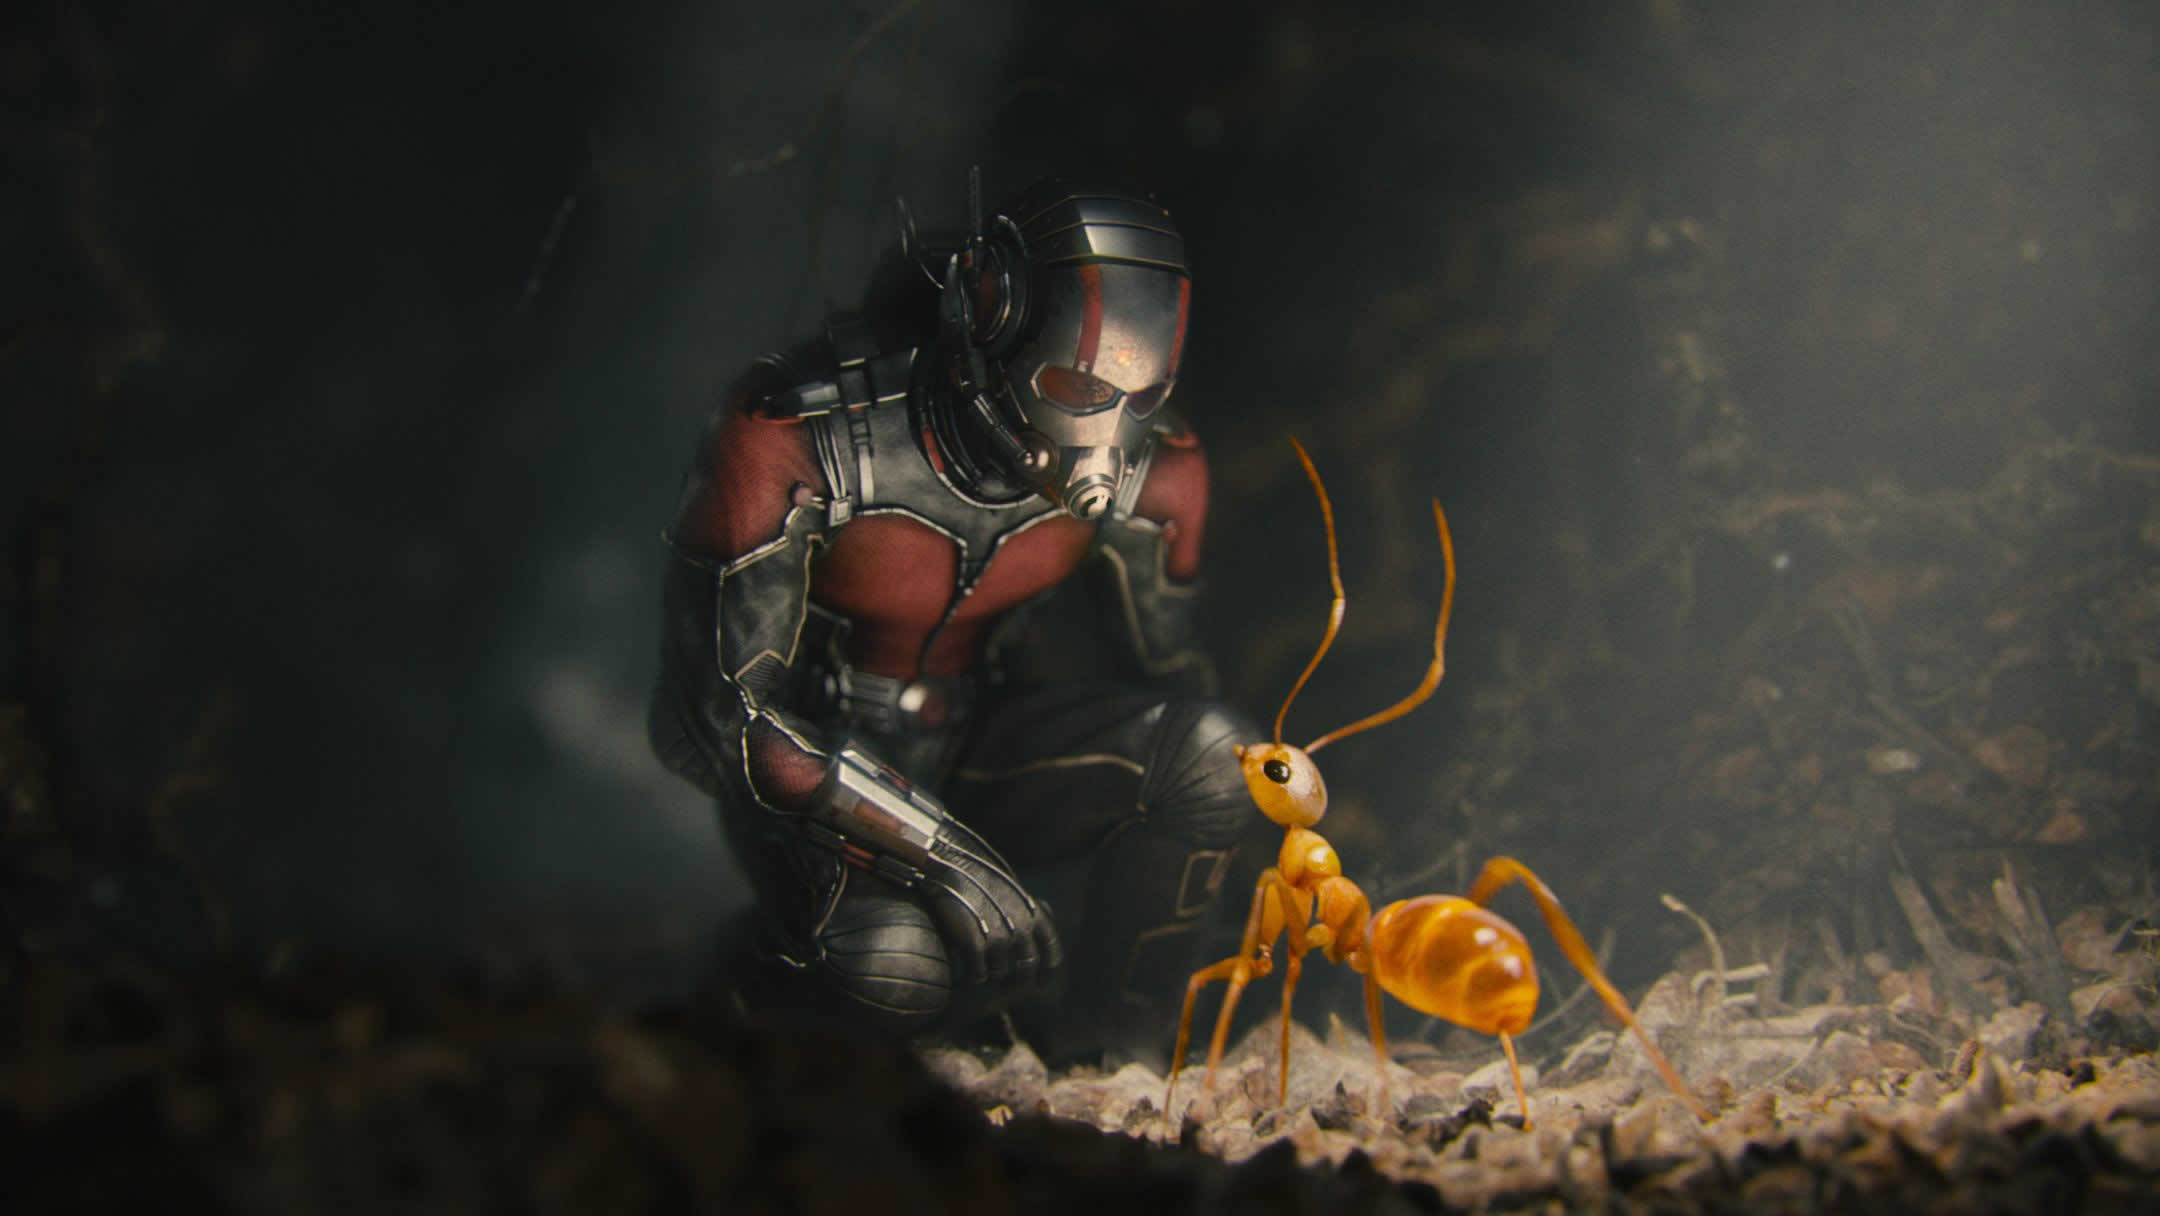 2160x1216 - Ant Wallpapers 24